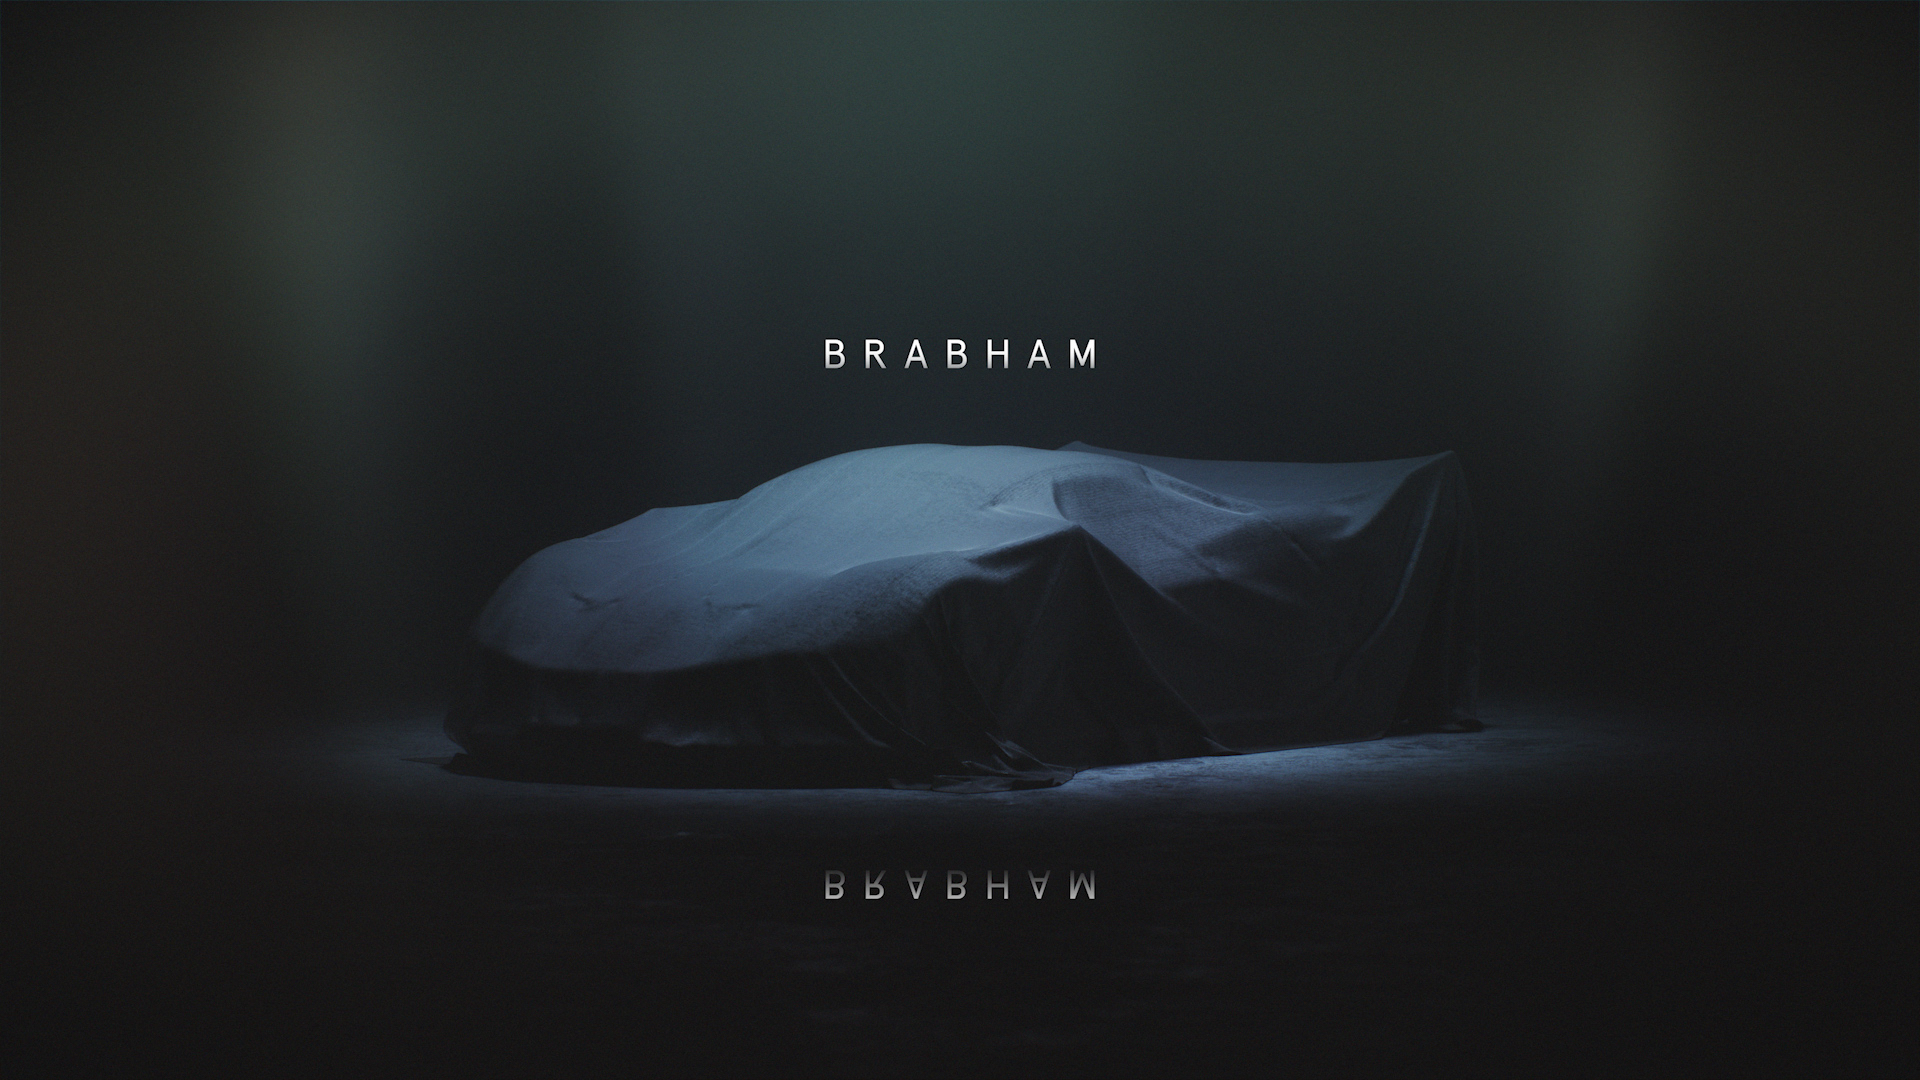 Heckler Brings Brabham Documentary to Life with High Octane Opening Titles